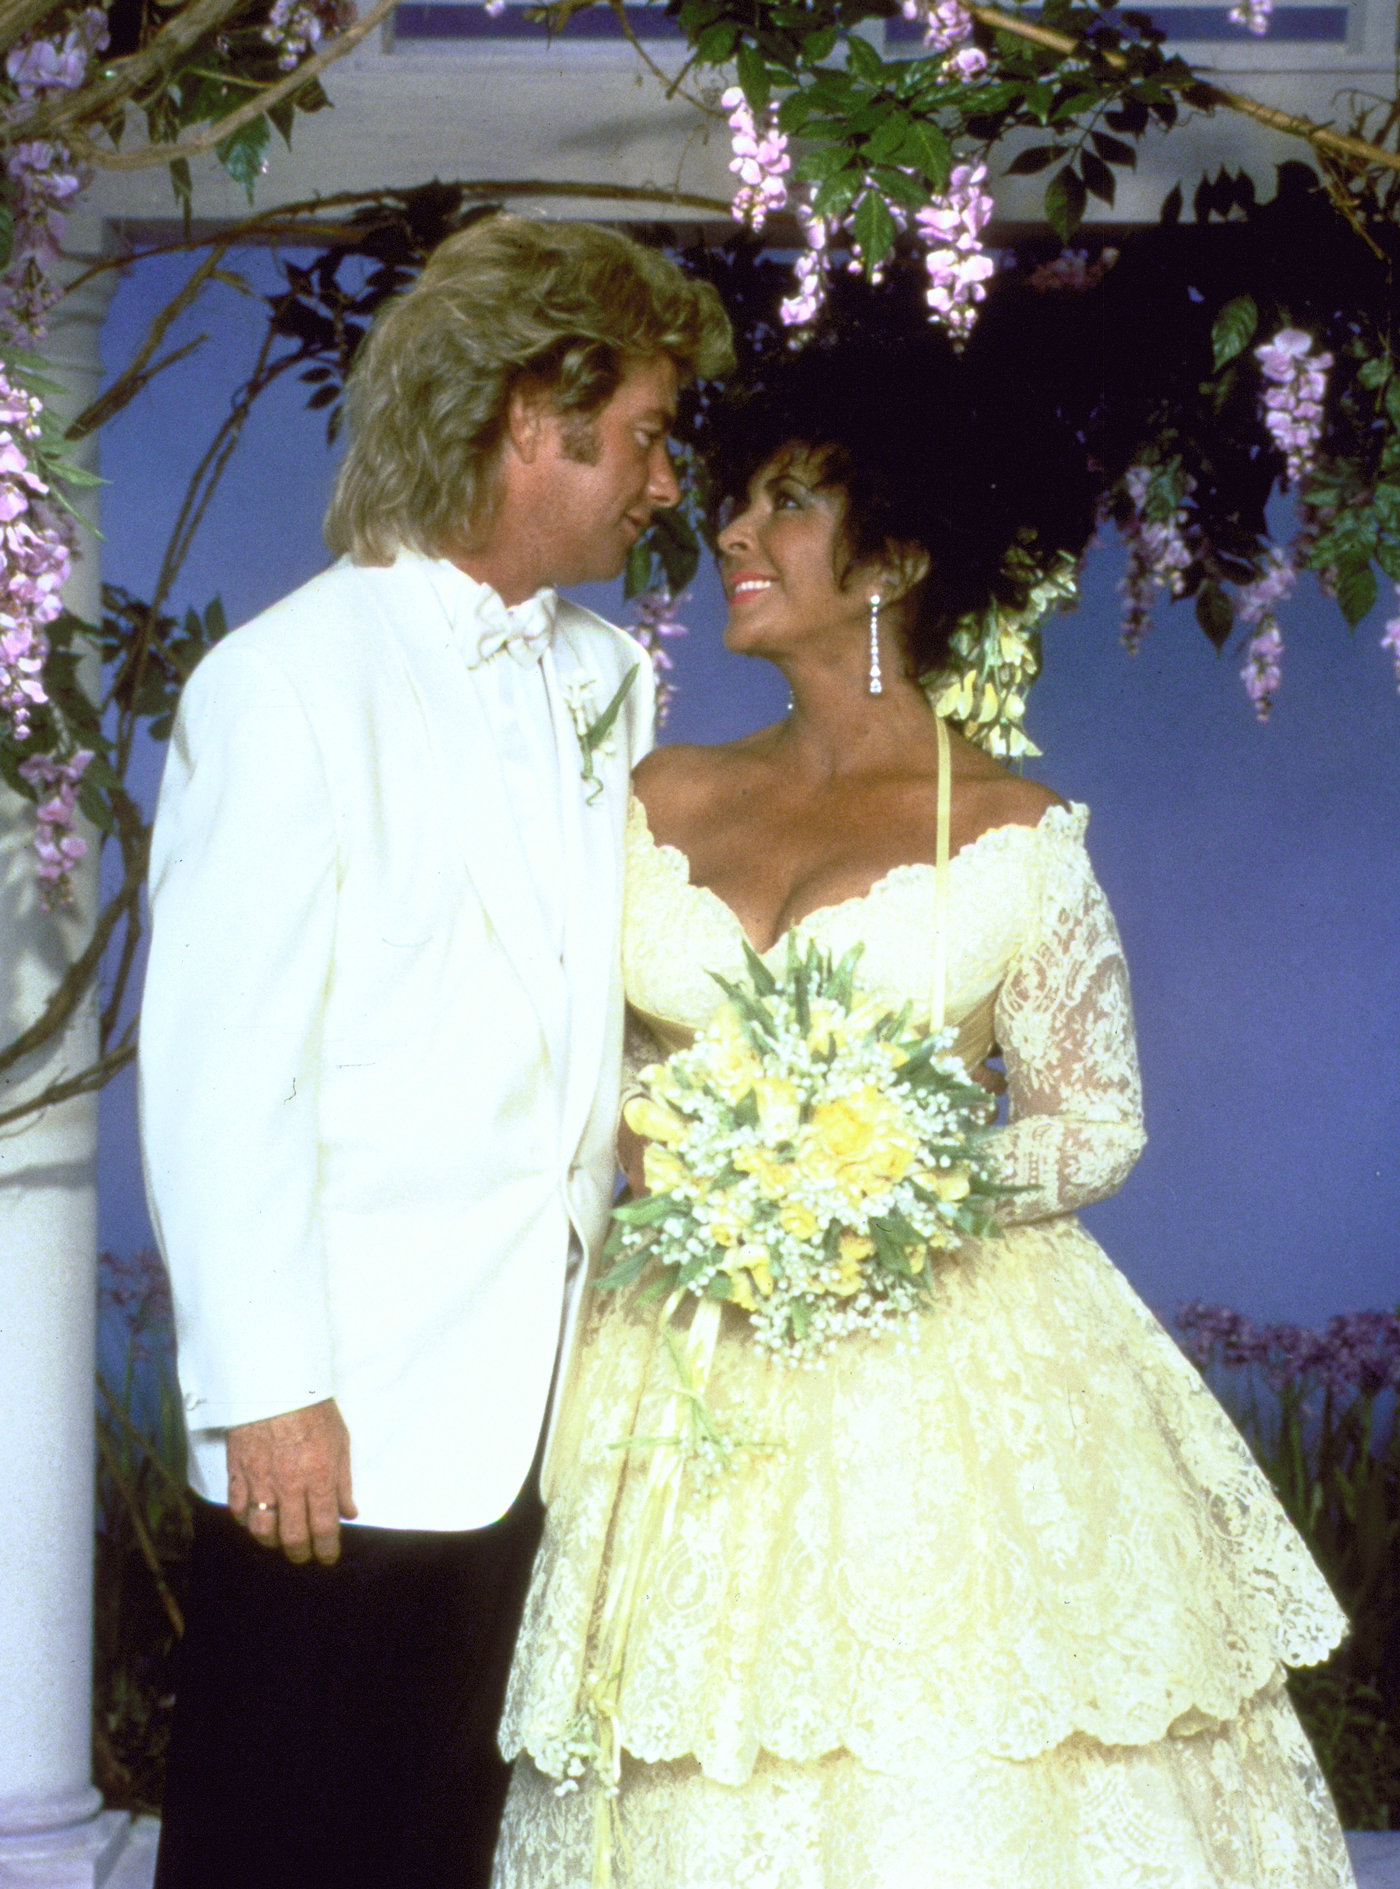 How many times was liz taylor married